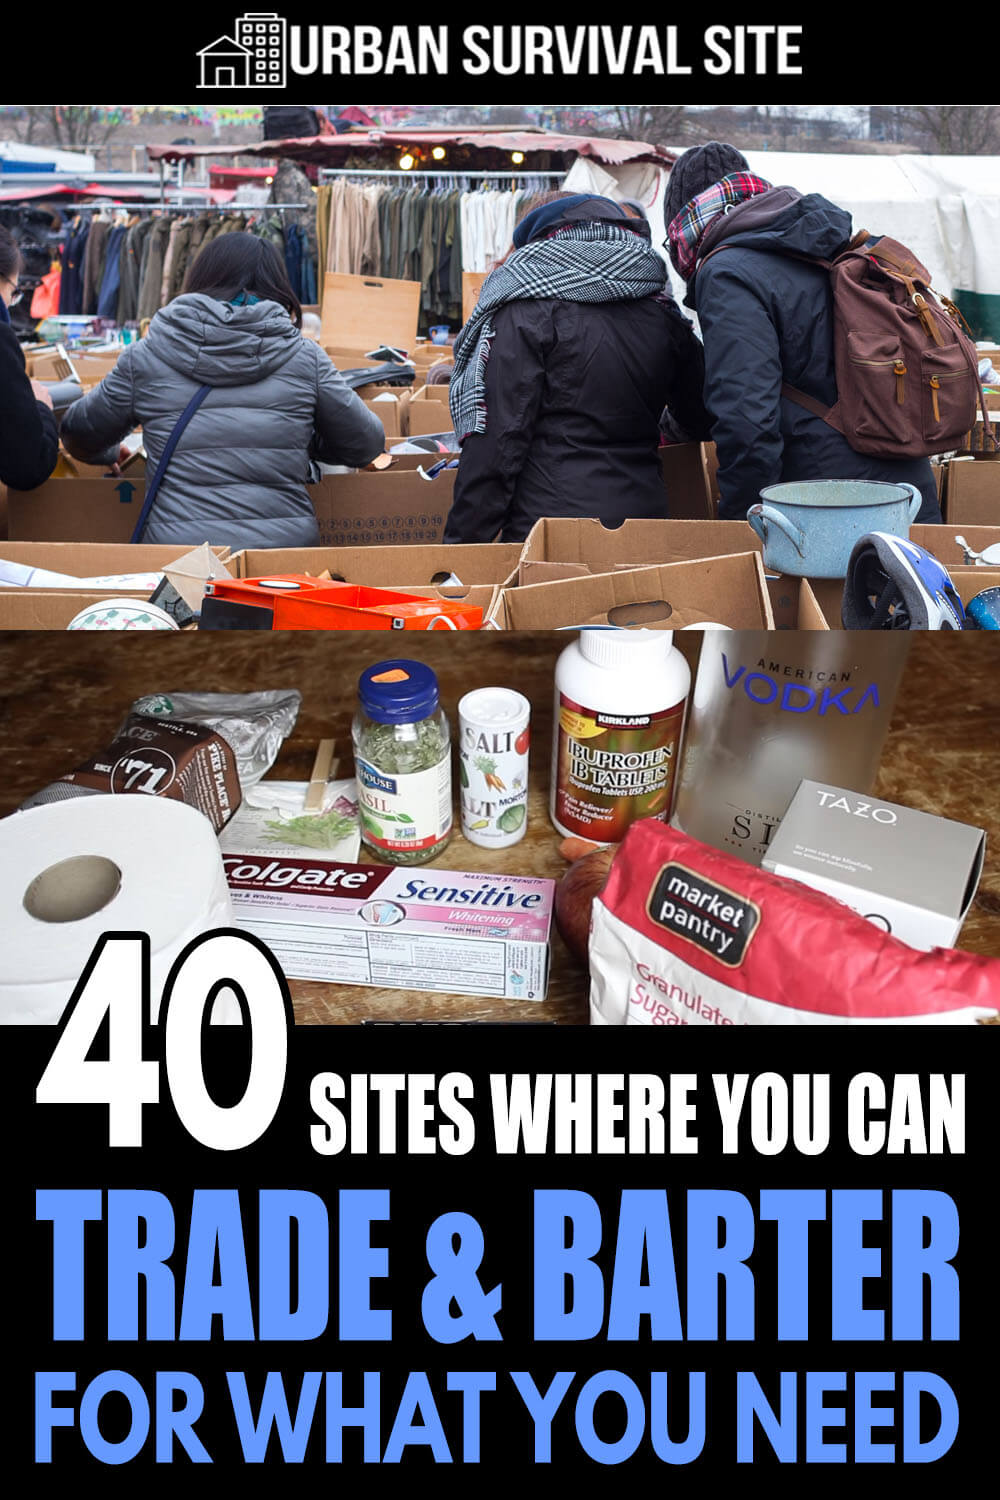 40 Sites Where You Can Trade & Barter For What You Need